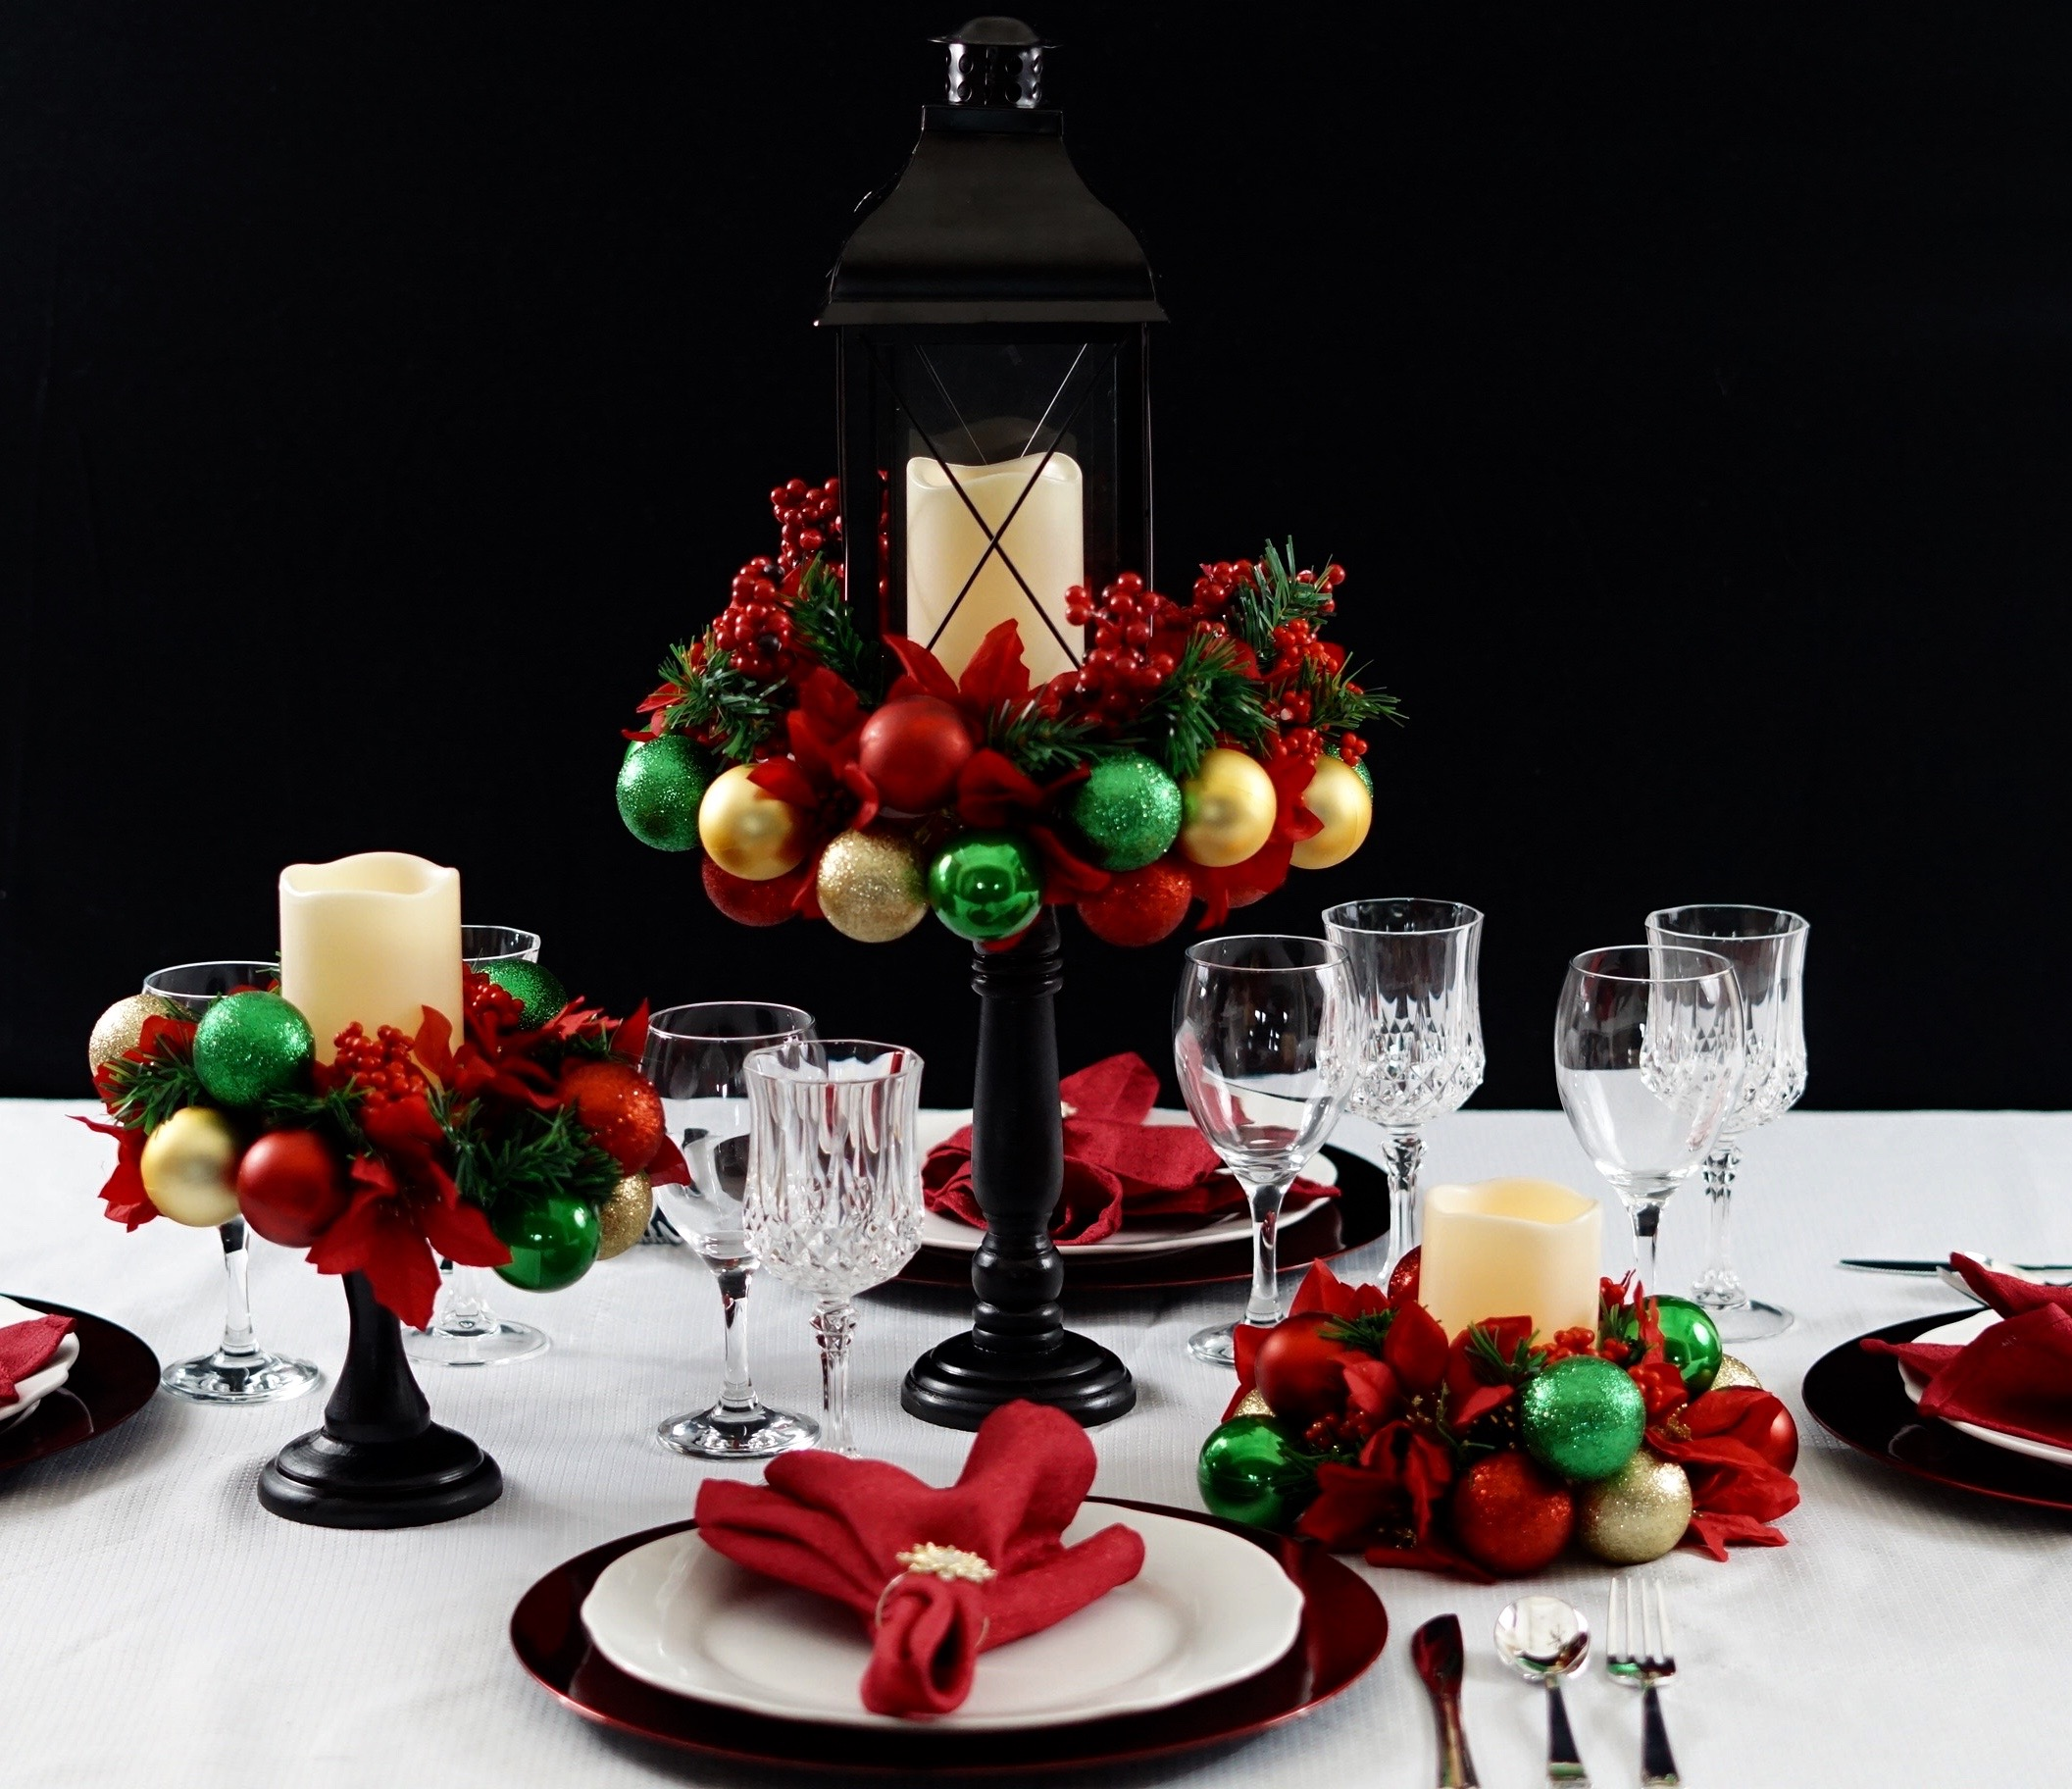 How To Perfect Your Christmas Table Decorations  CnNzLTAtNUIyZmRh: Easy DIY Christmas Ornament Centerpiece For The Perfect